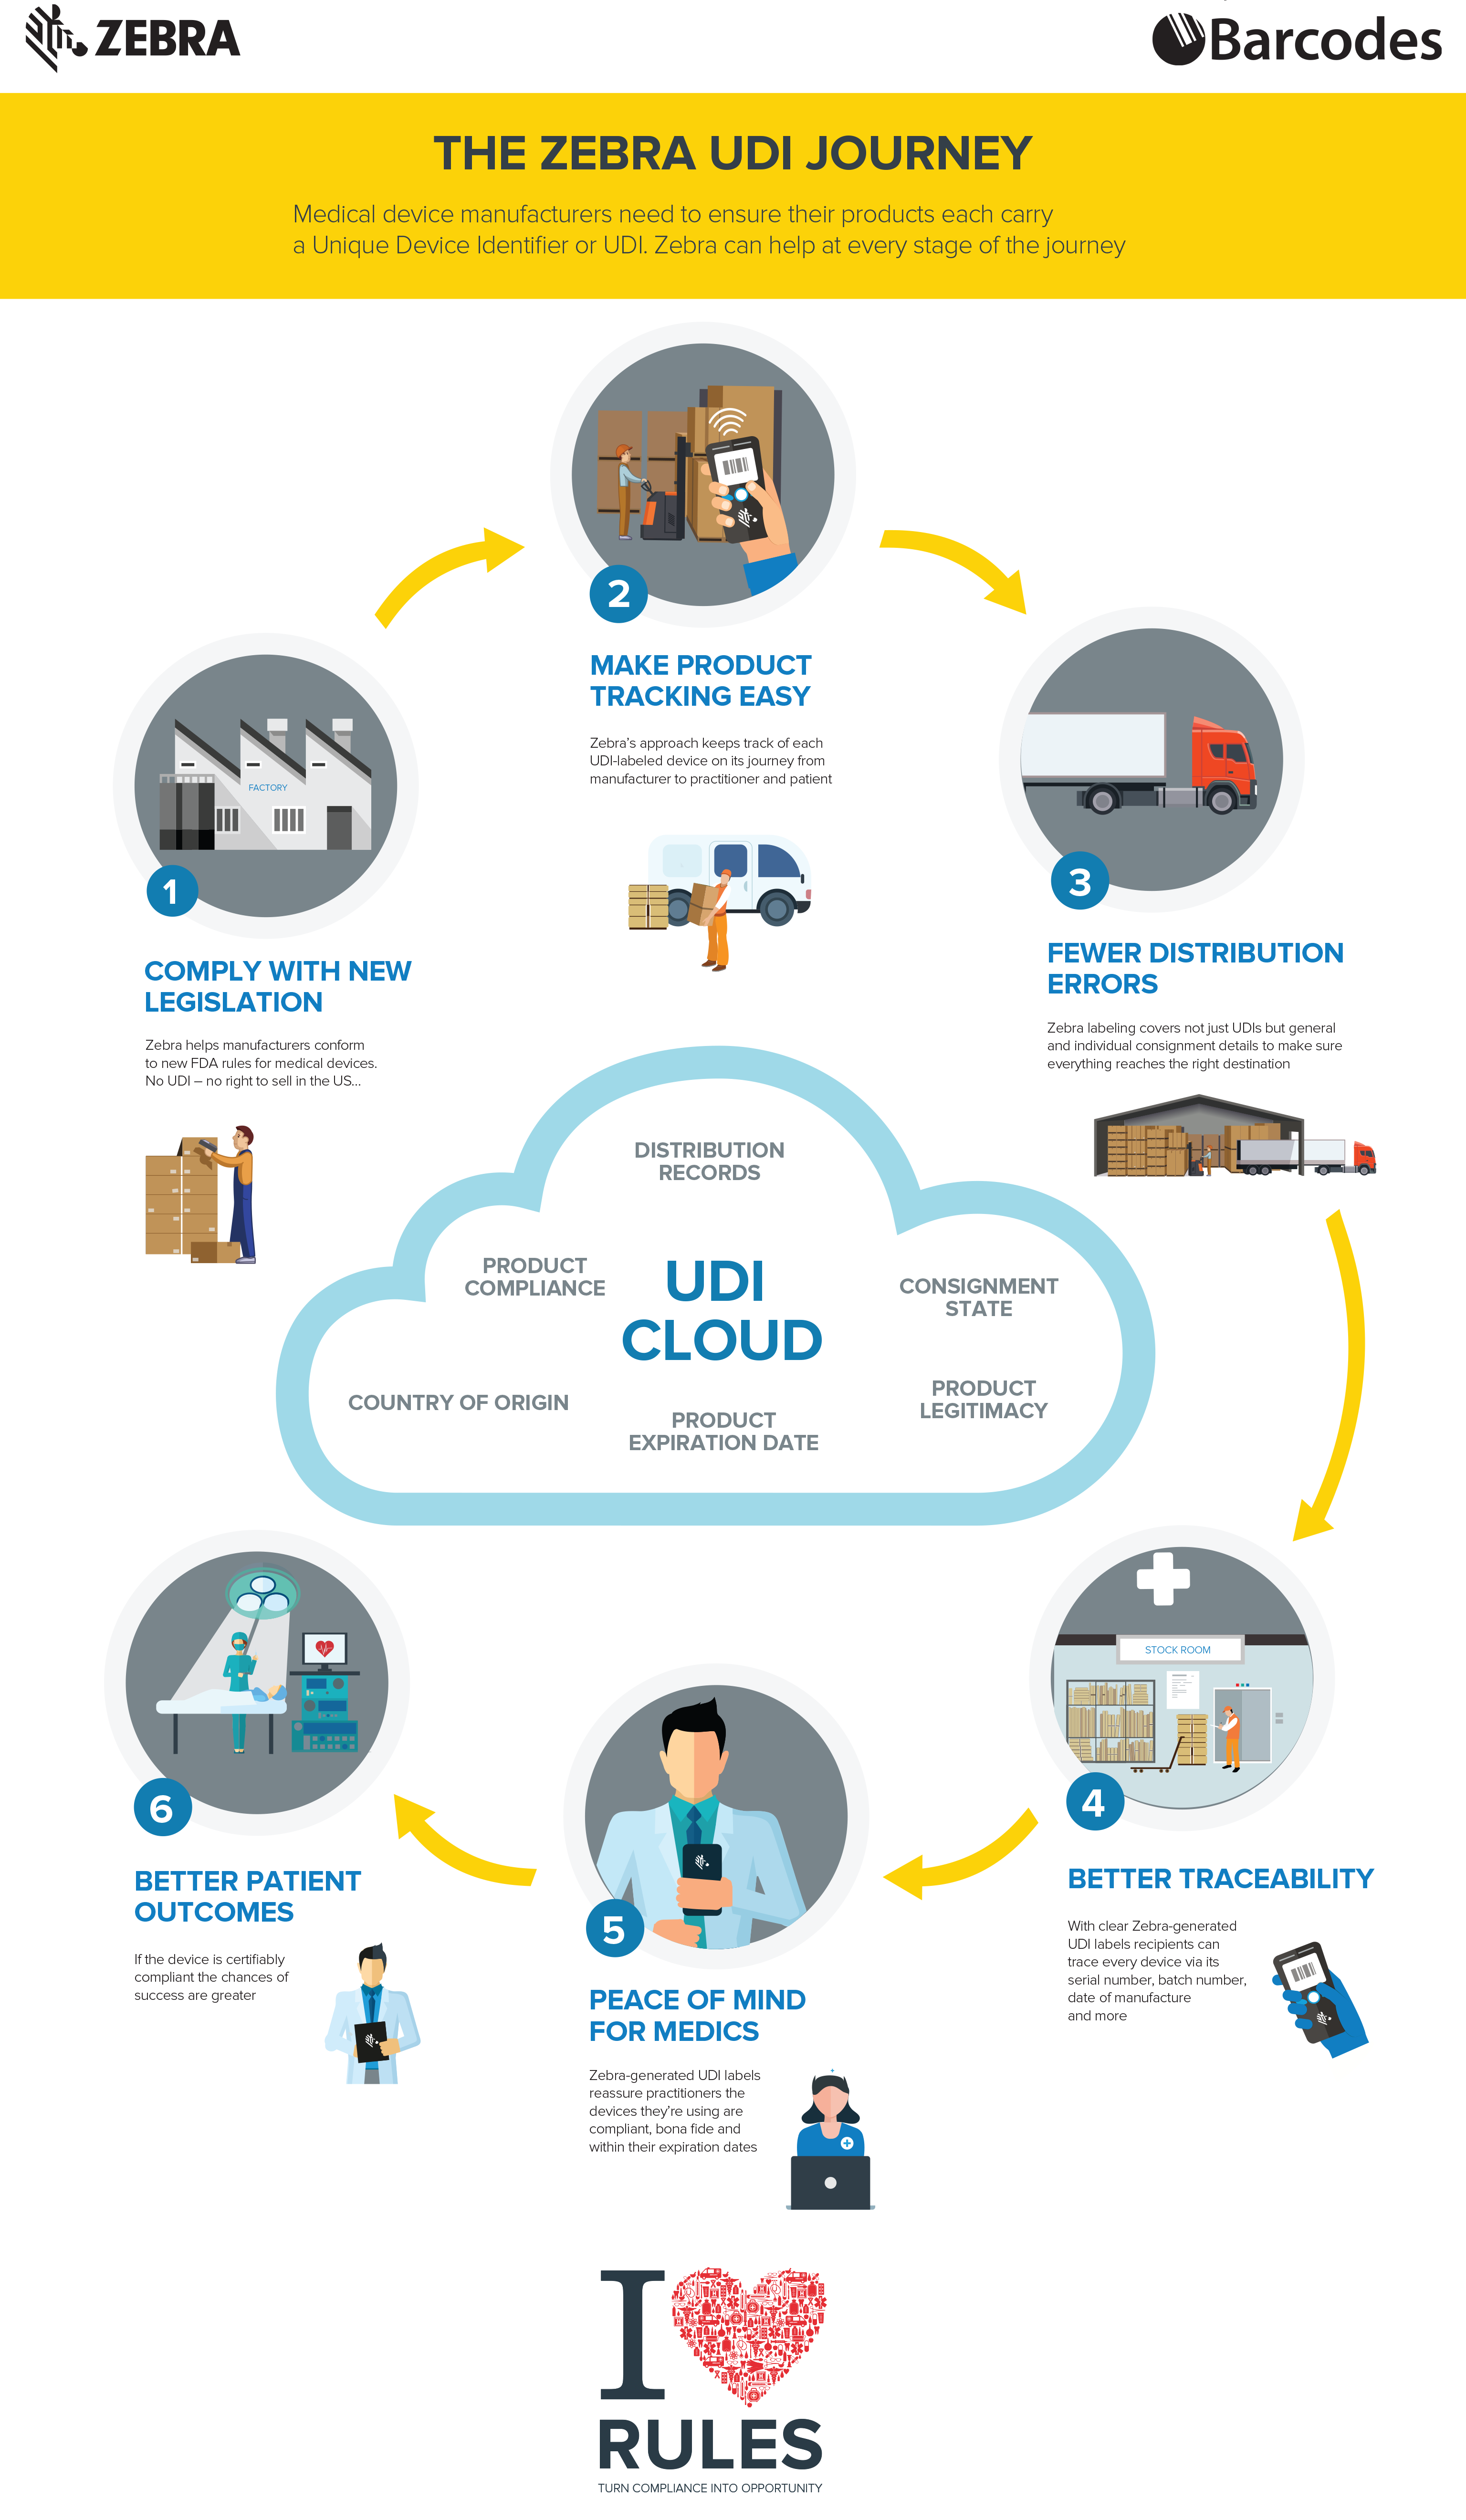 udi-journey-infographic